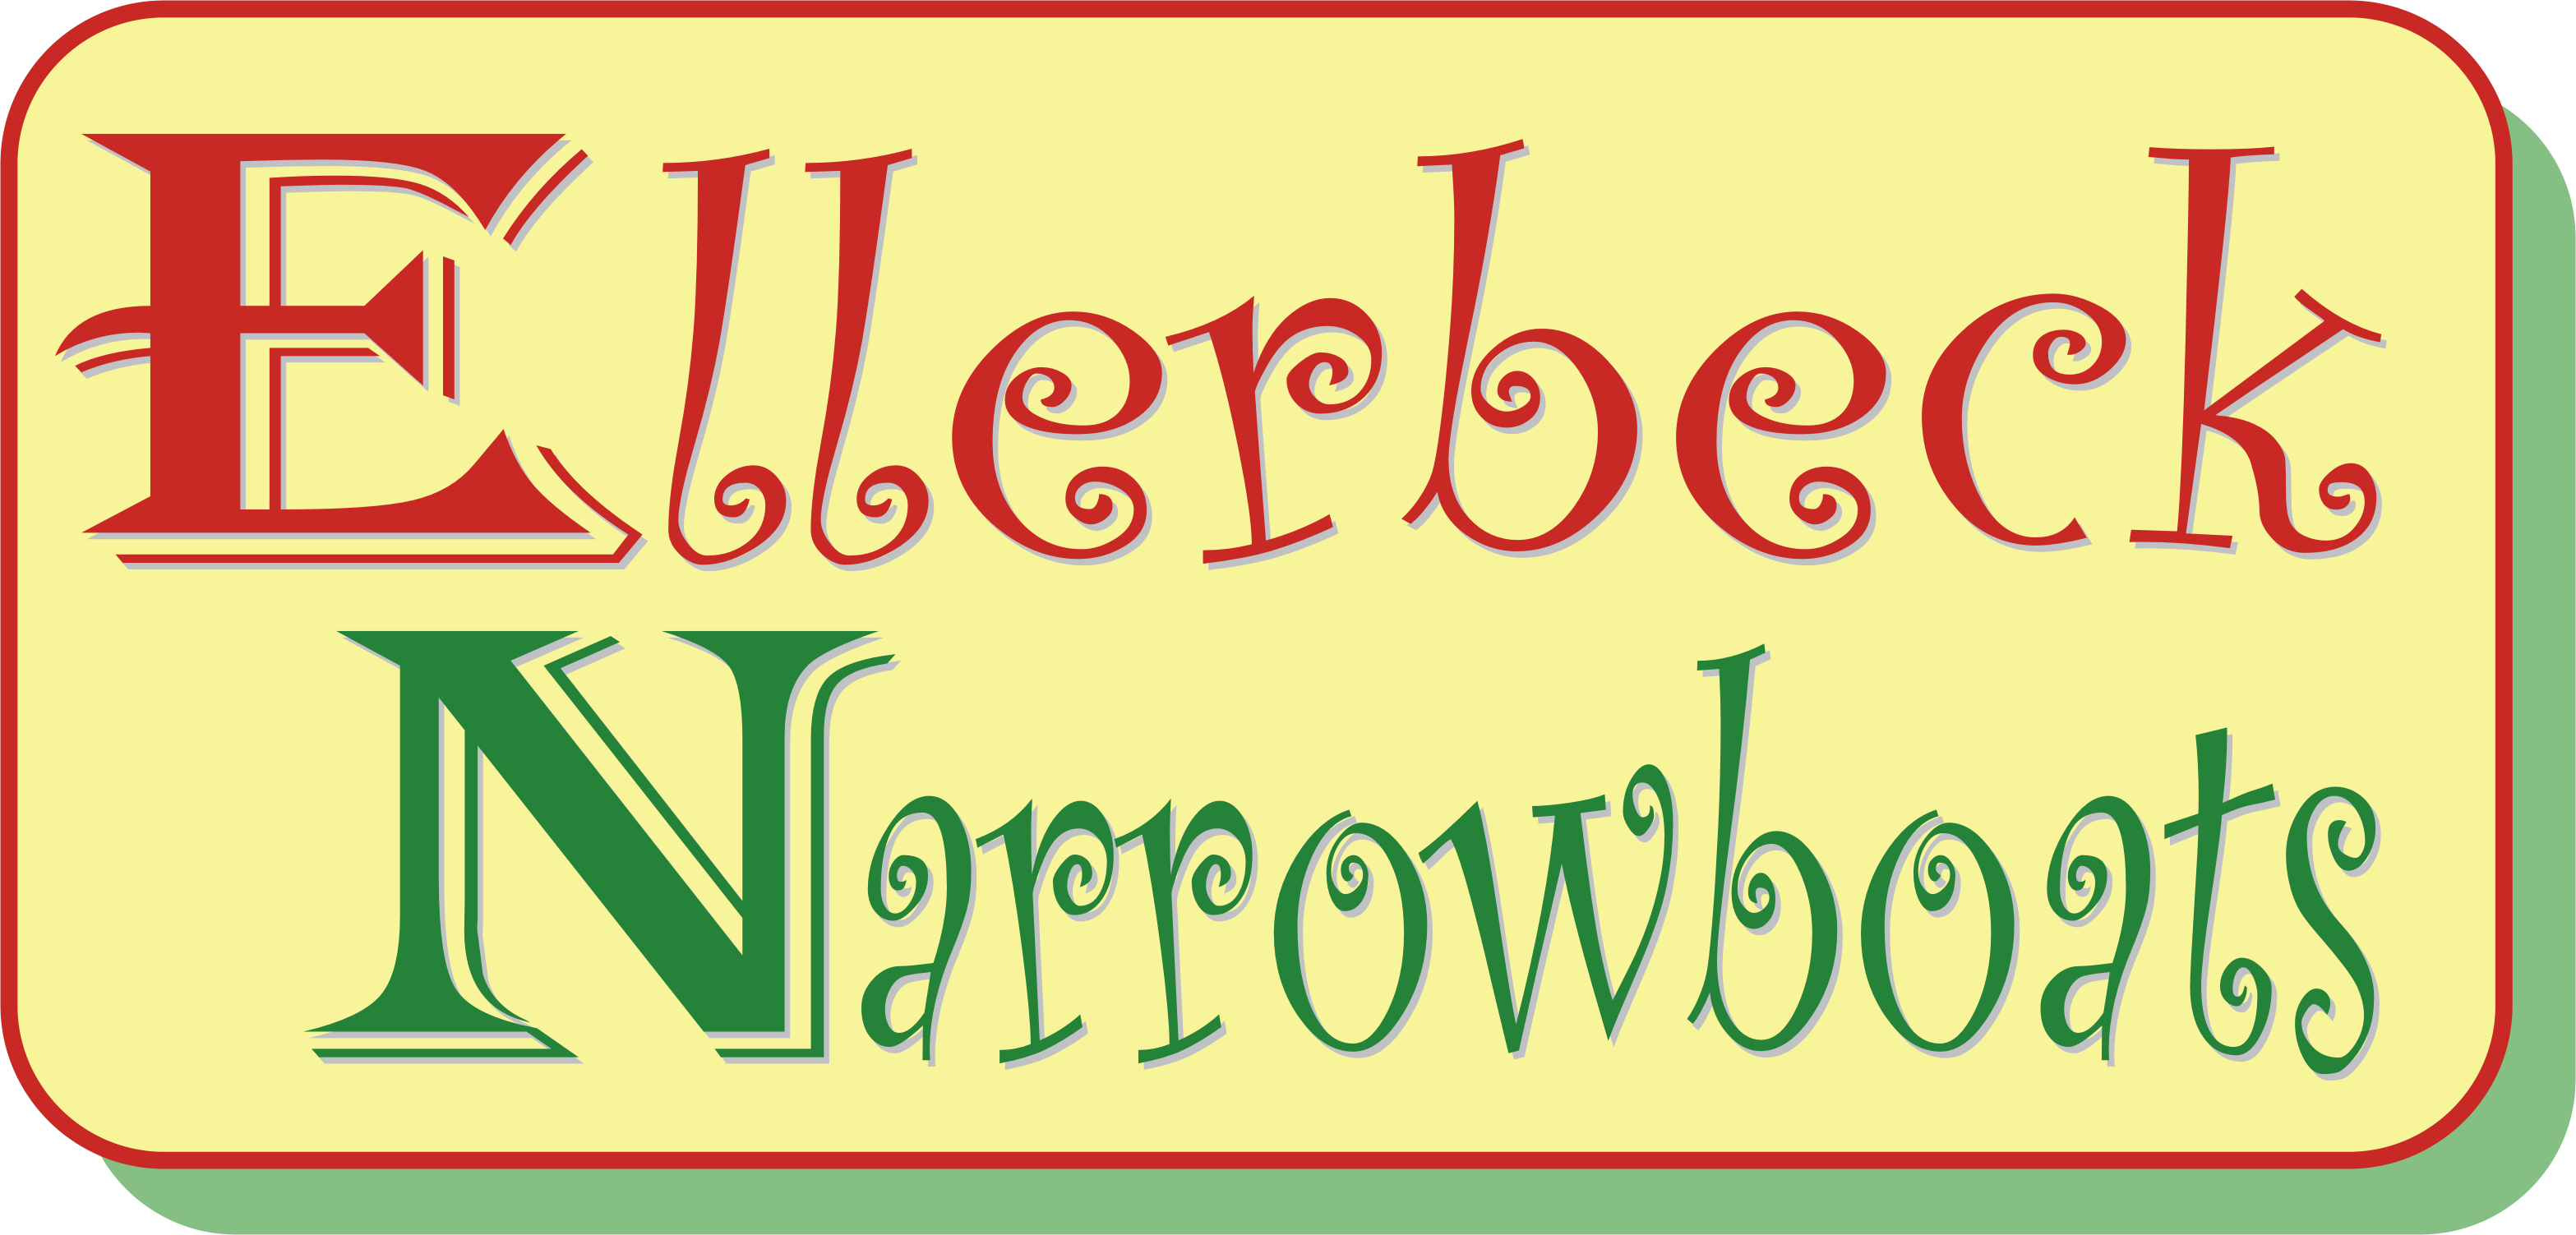 Ellerbeck Narrowboats Day Boat Hire